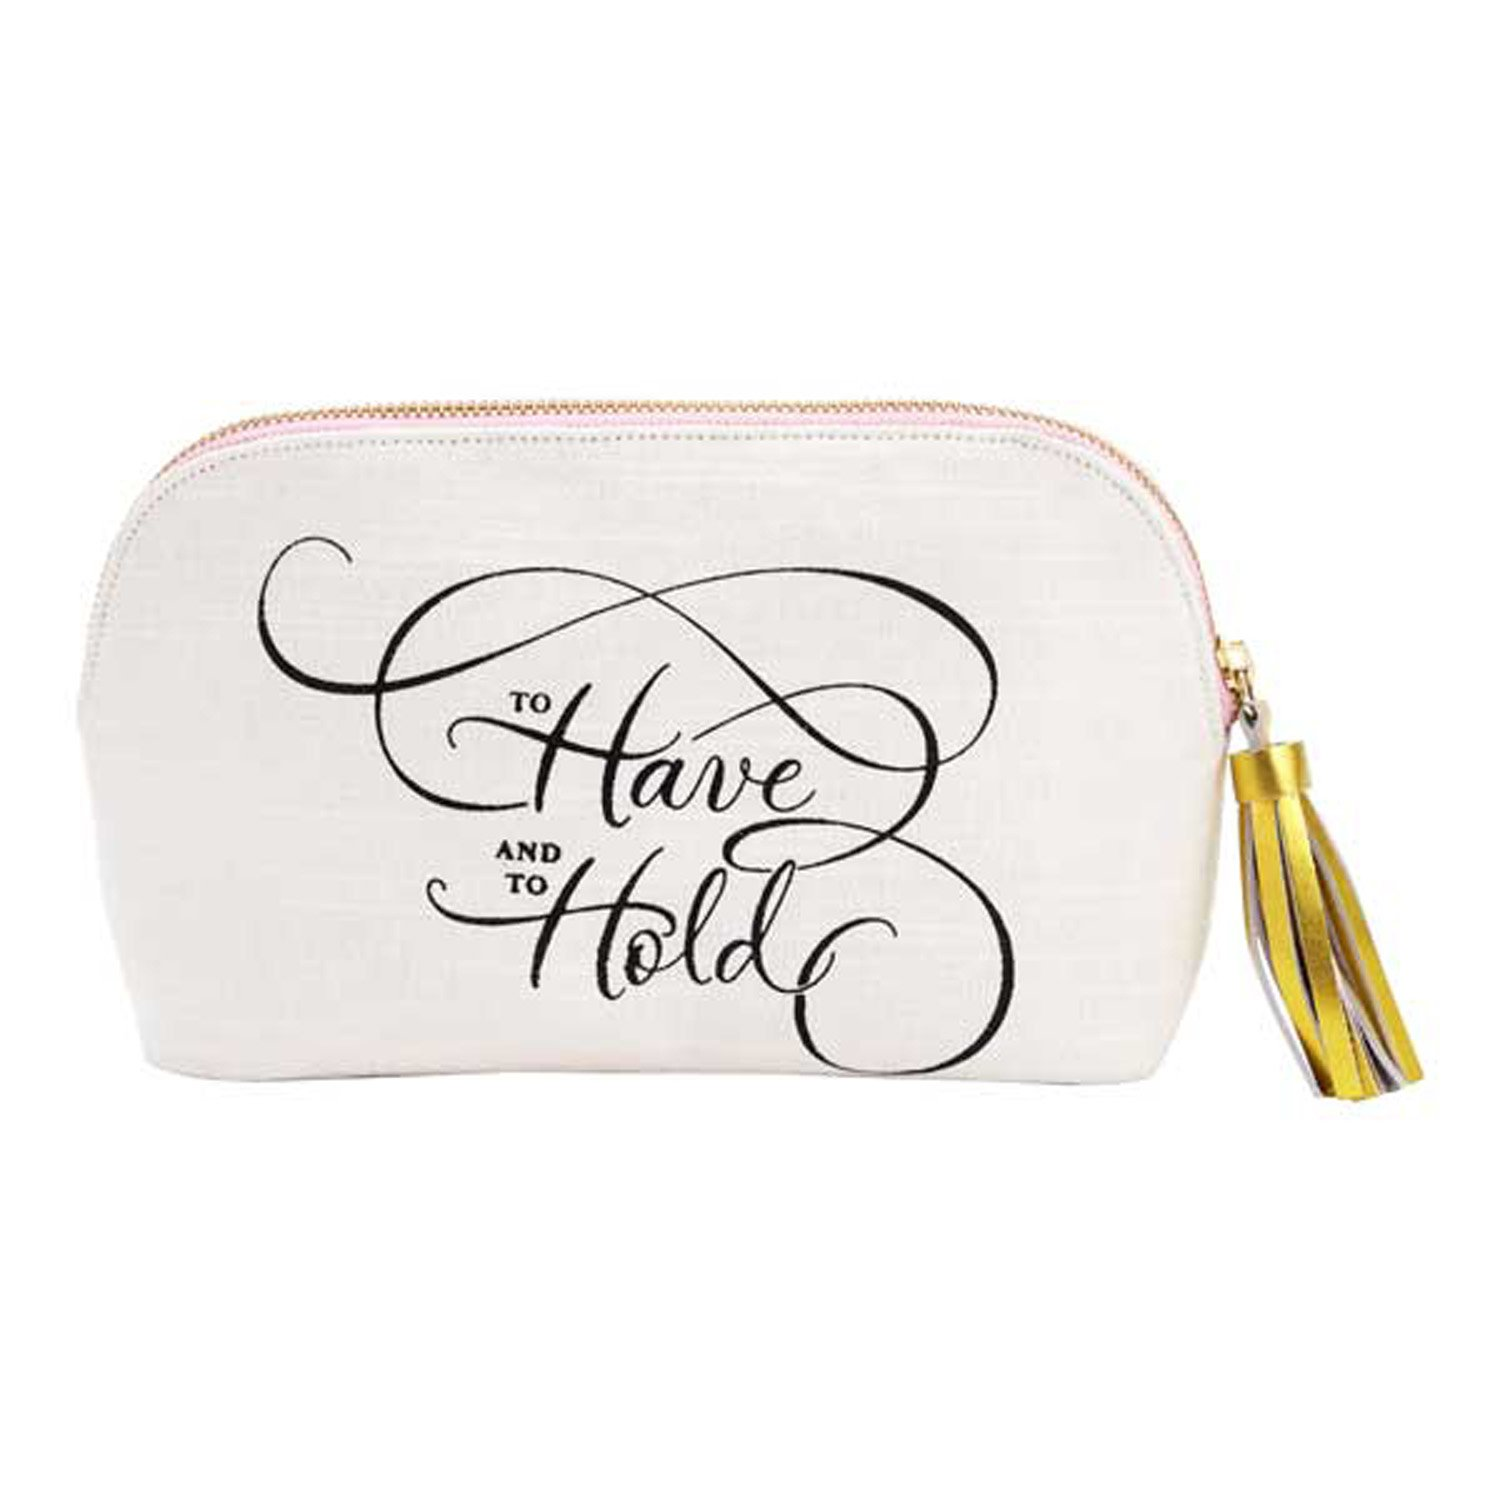 Hallmark Home To Have and to Hold Bridal Pouch, Travel Cosmetic Case with Zip Closure and Tassle Pull, For the Bride to Be